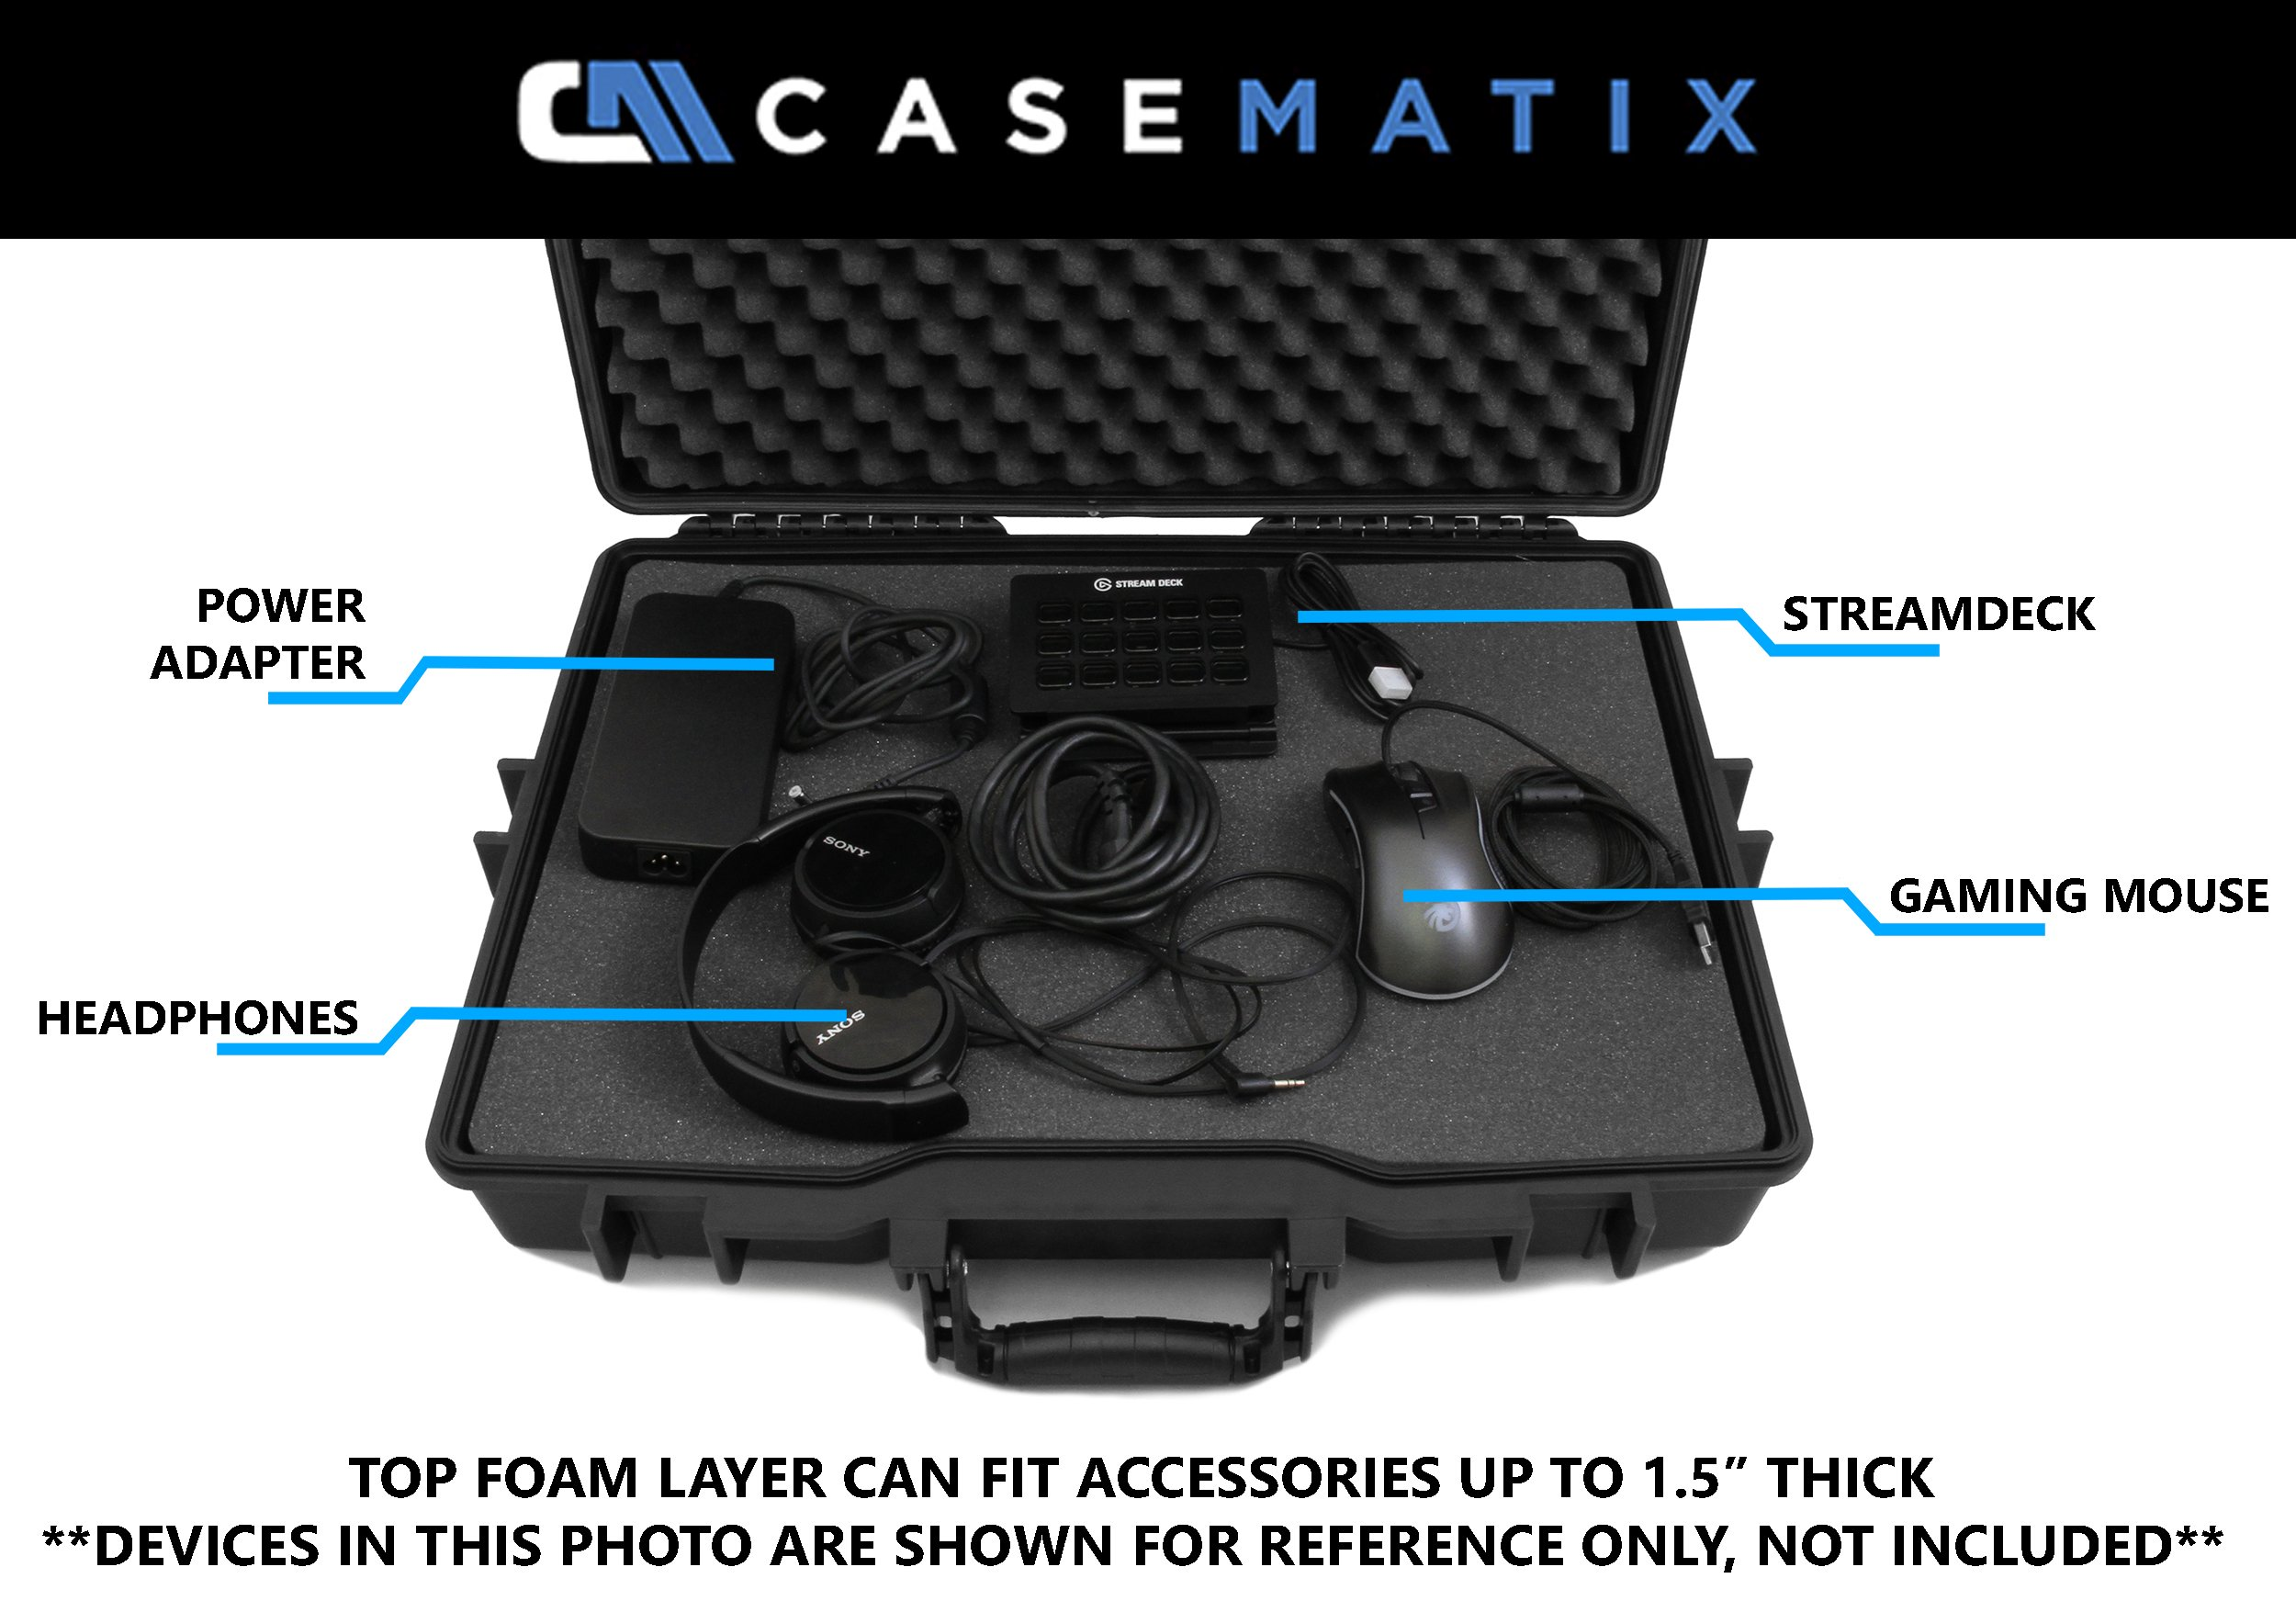 CASEMATIX Elite Custom Laptop Case for MSI Laptops MSI GL62M, MSI GL72N, MSI GS73VR Stealth PRO, MSI GS65 Stealth Thin, MSI GE63VR Raider, GT73VR Titan and More with MSI Accessories by CASEMATIX (Image #8)